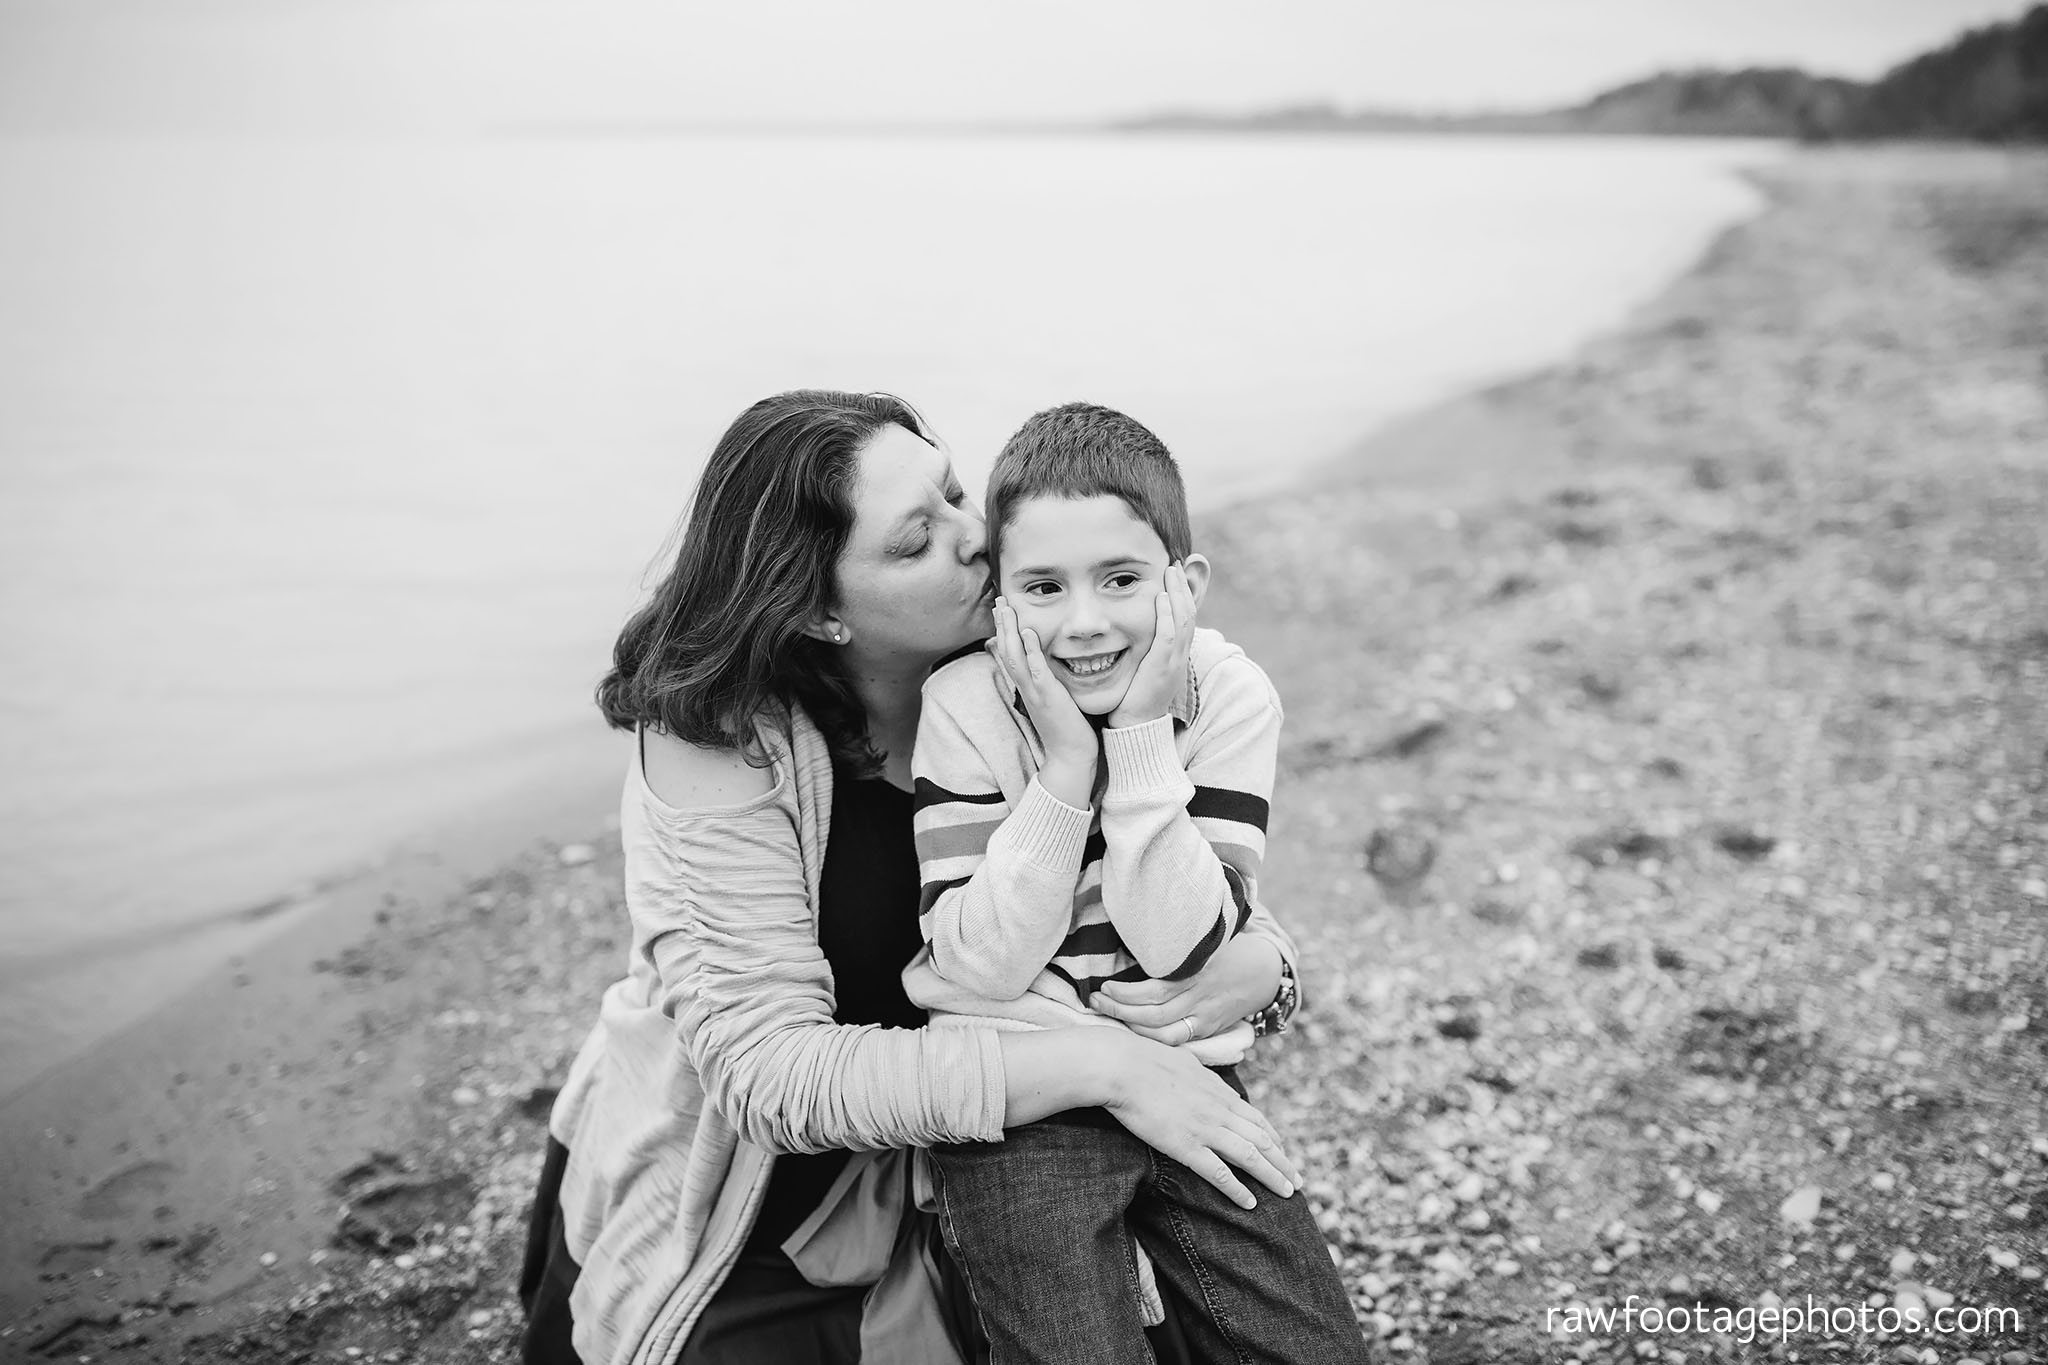 london_ontario_family_photographer-port_stanley_photography-raw_footage_photography-family_photos-beach_photos-fall_family_photos-lifestyle_family_photography-candid_photographer016.jpg